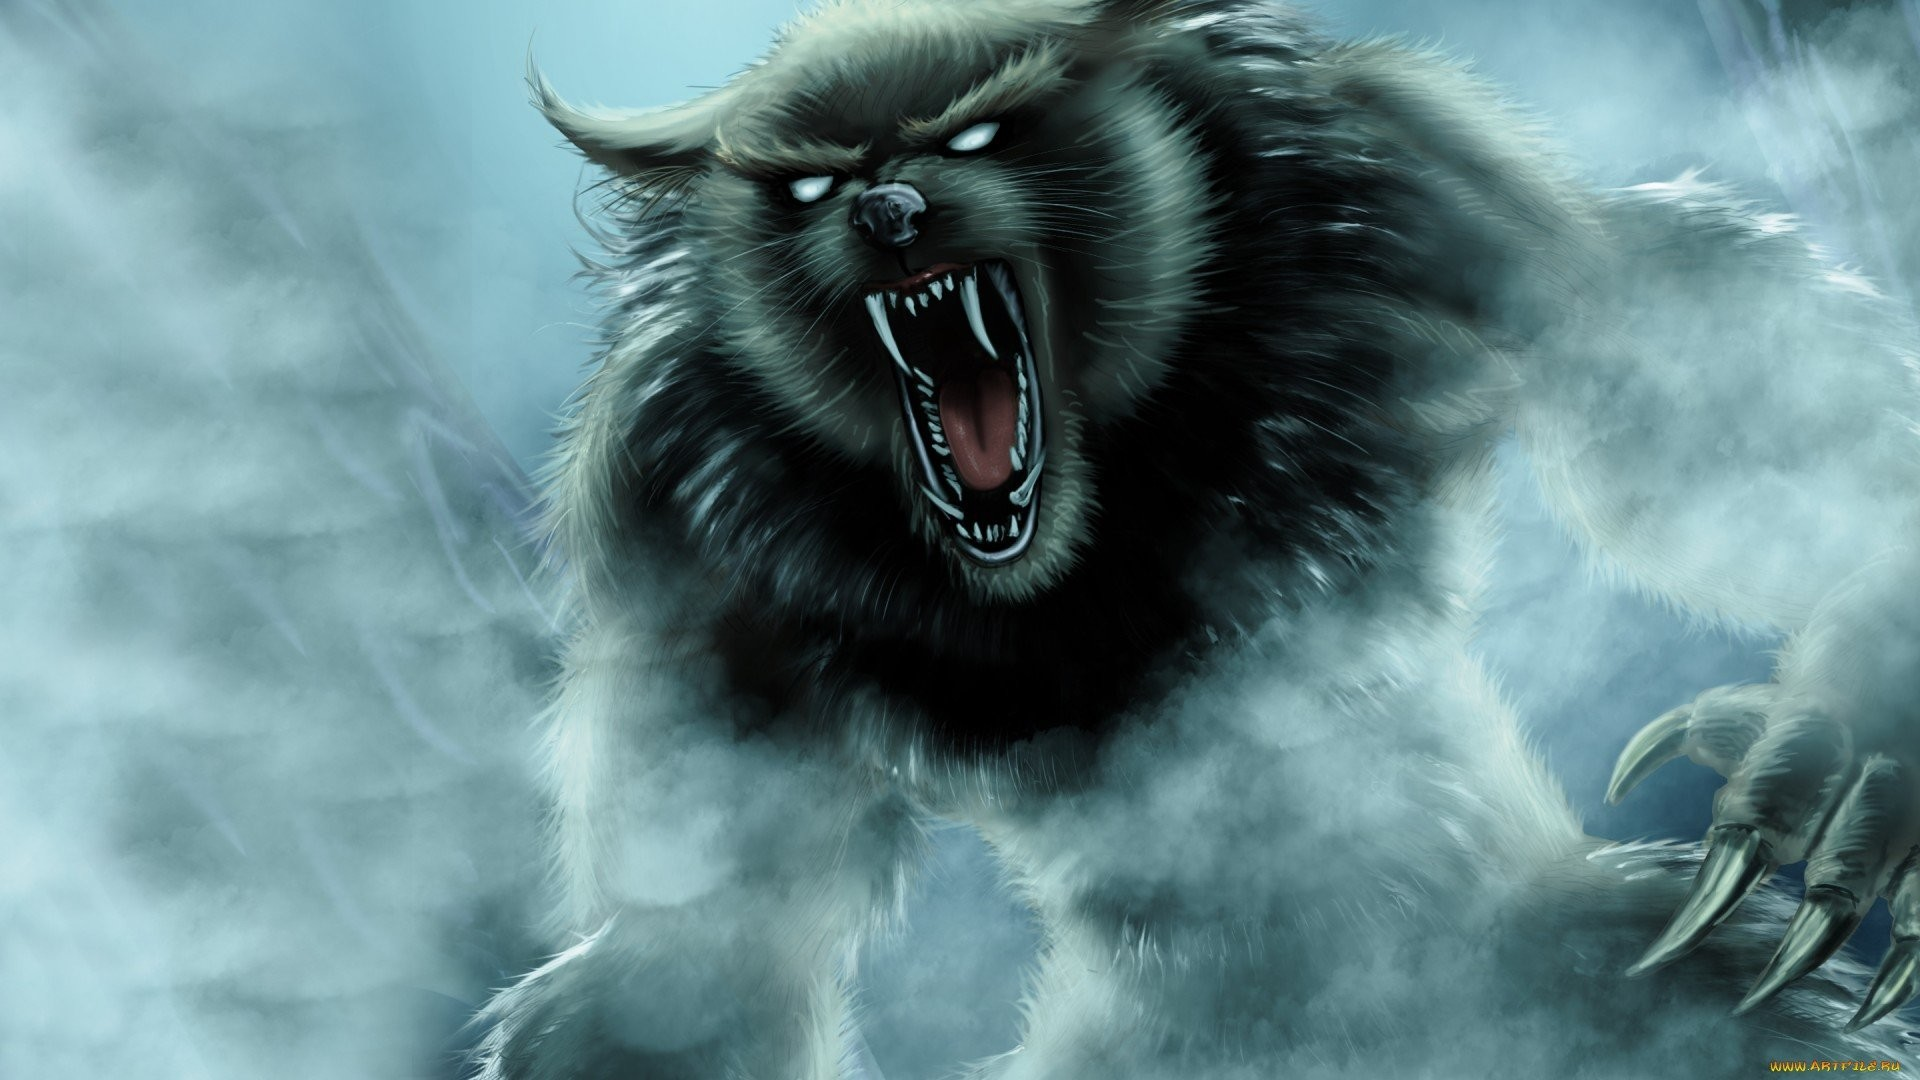 1920x1080 x Werewolf Wallpapers | HD Wallpapers | Pinterest | Werewolves, Underworld  werewolf and Wallpaper